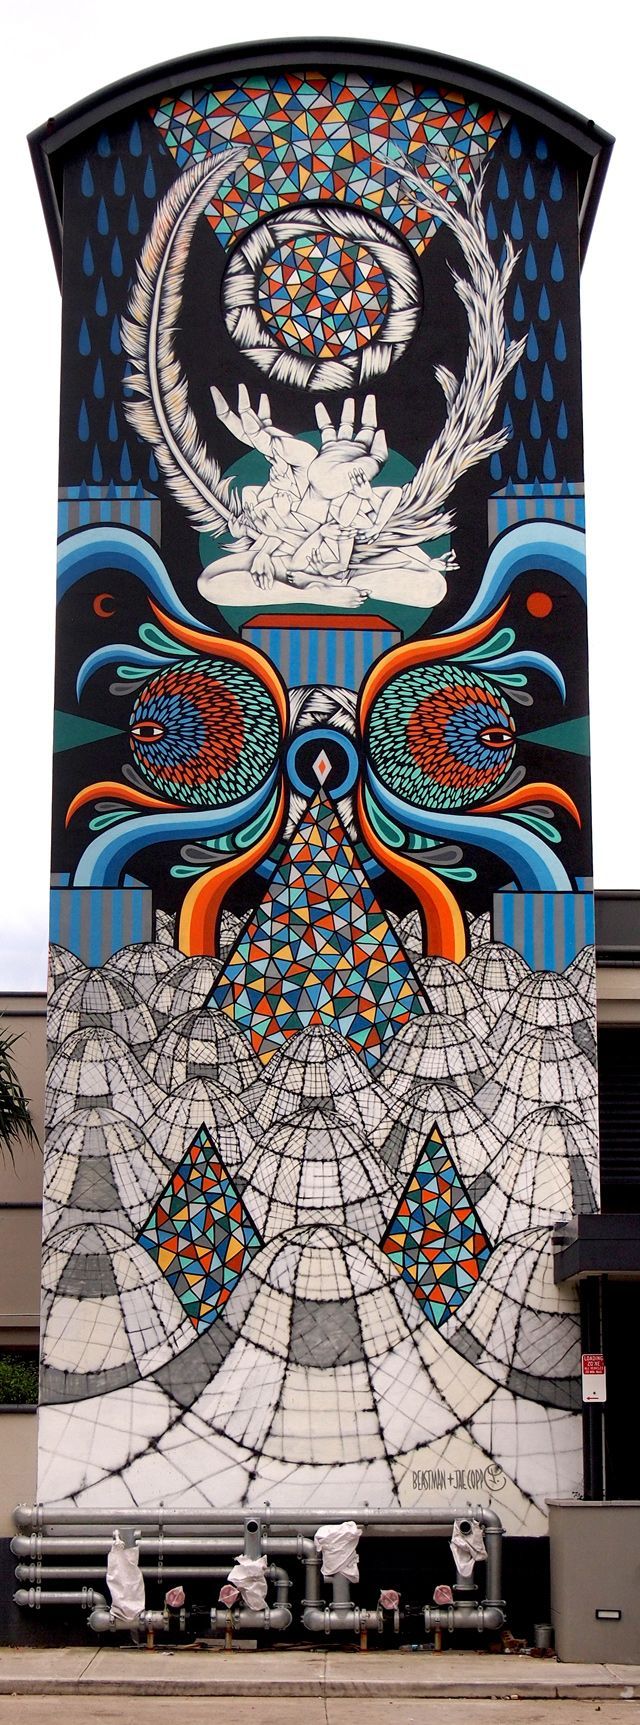 Beastman and jae copp, the hours tower mural in surfer's paradise, Australia